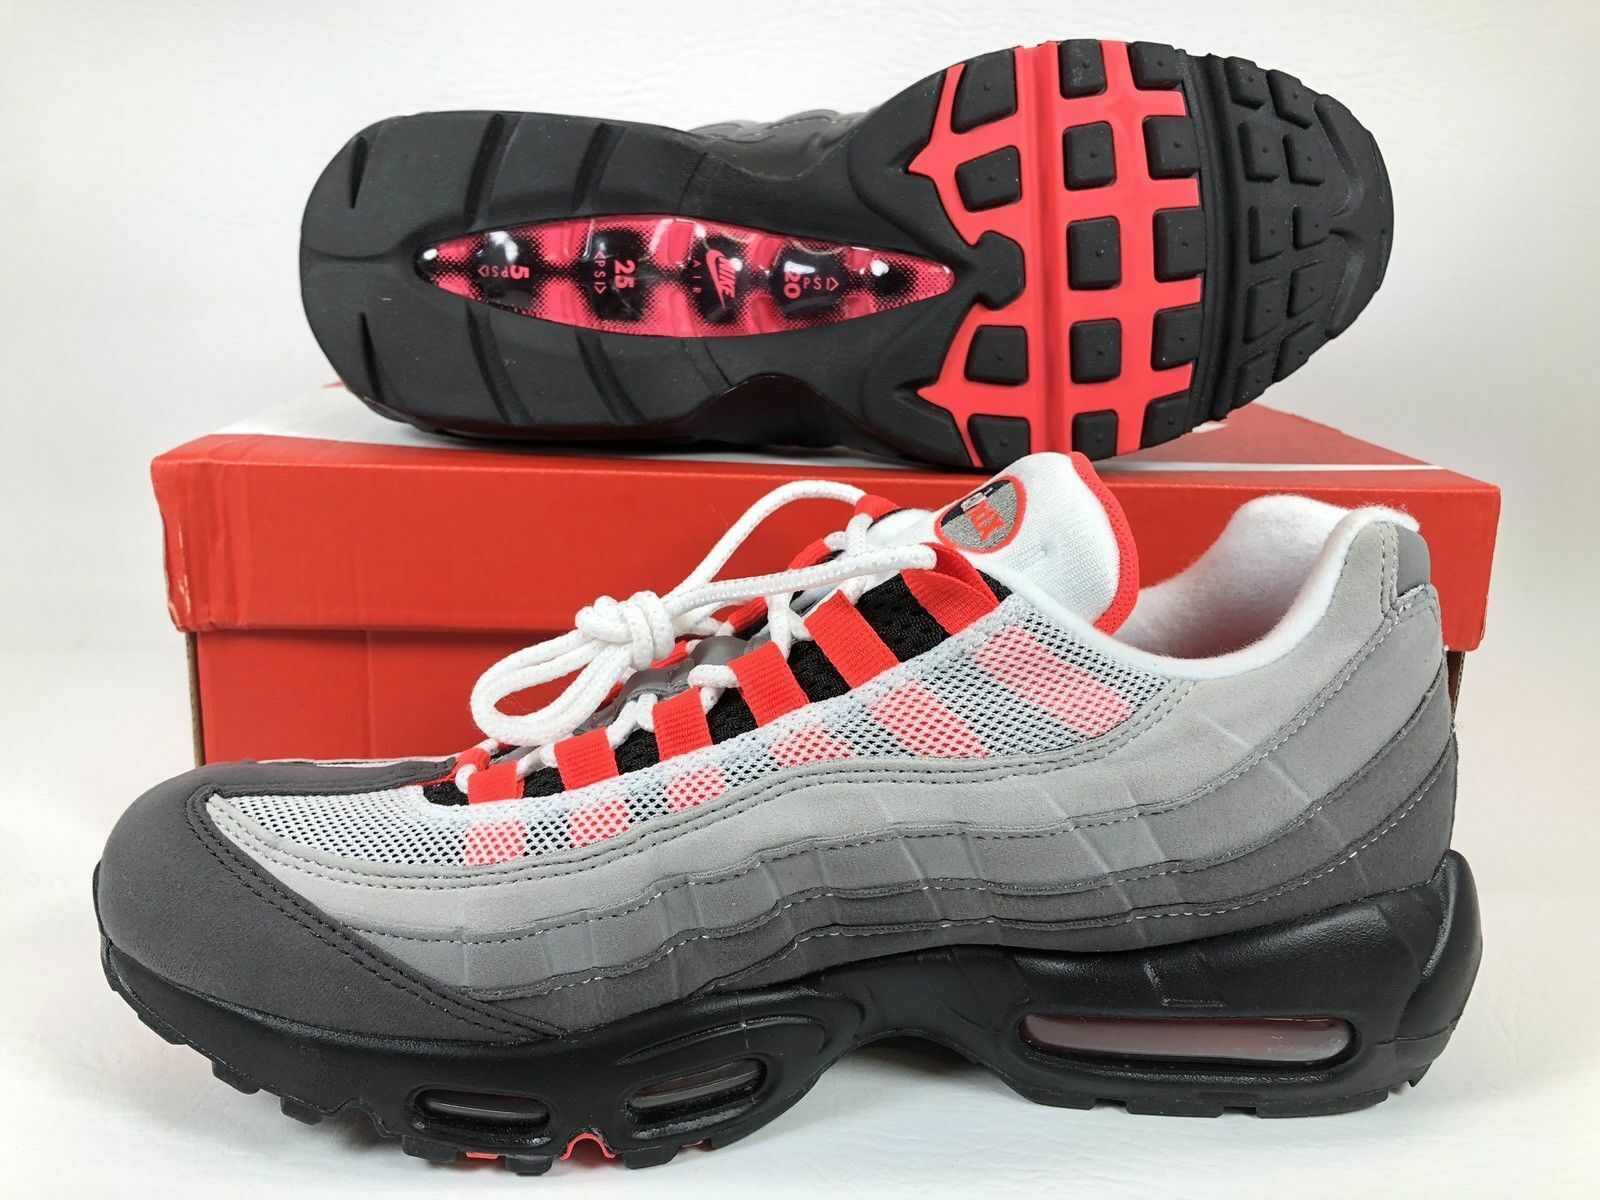 premium selection 26844 db9c7 Details about Nike Air Max 95 OG Solar Red Granite Men's Running Shoes  AT2865-100 SZ 5